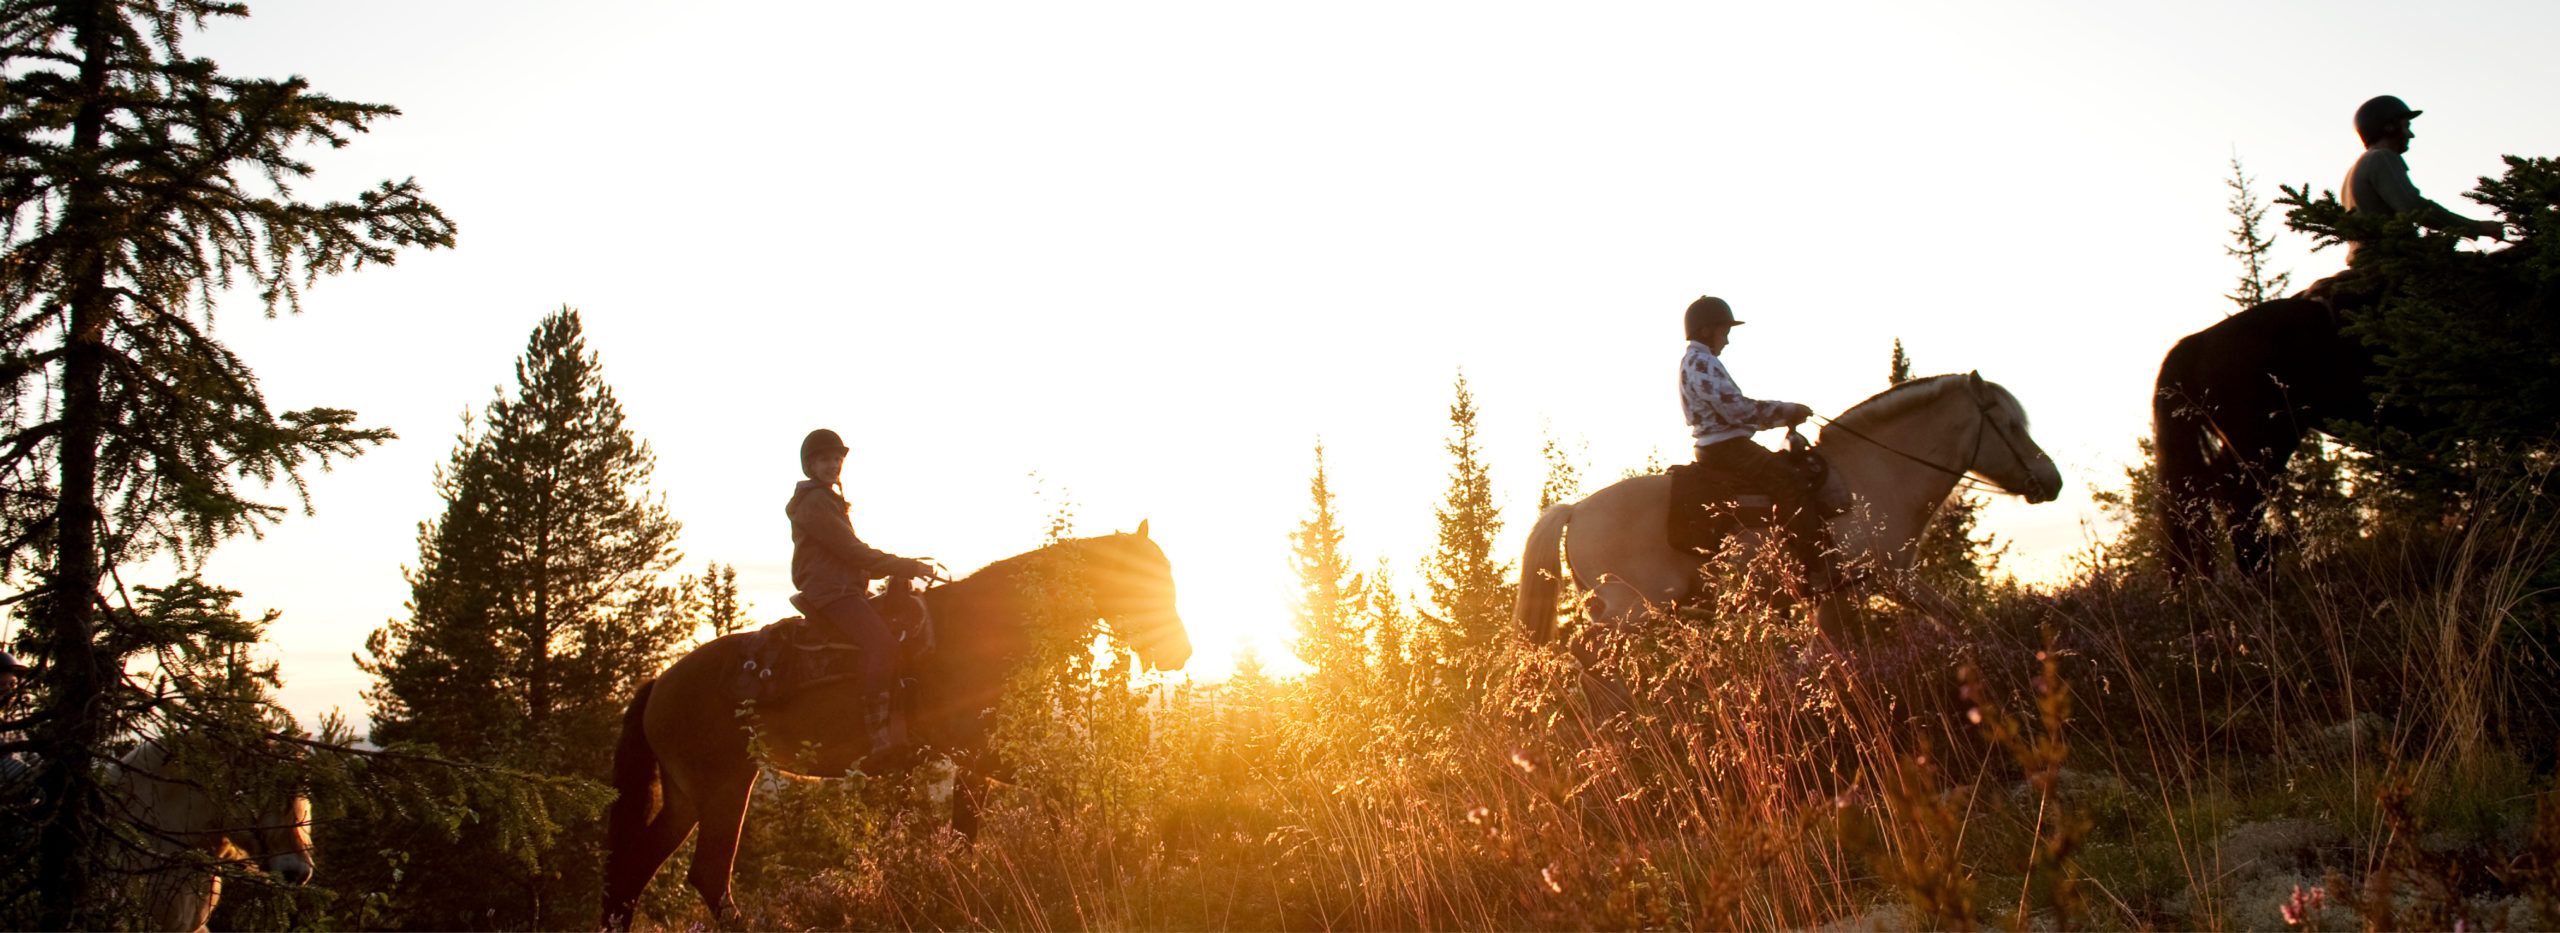 People on horseback riding in Trysil in the sunset